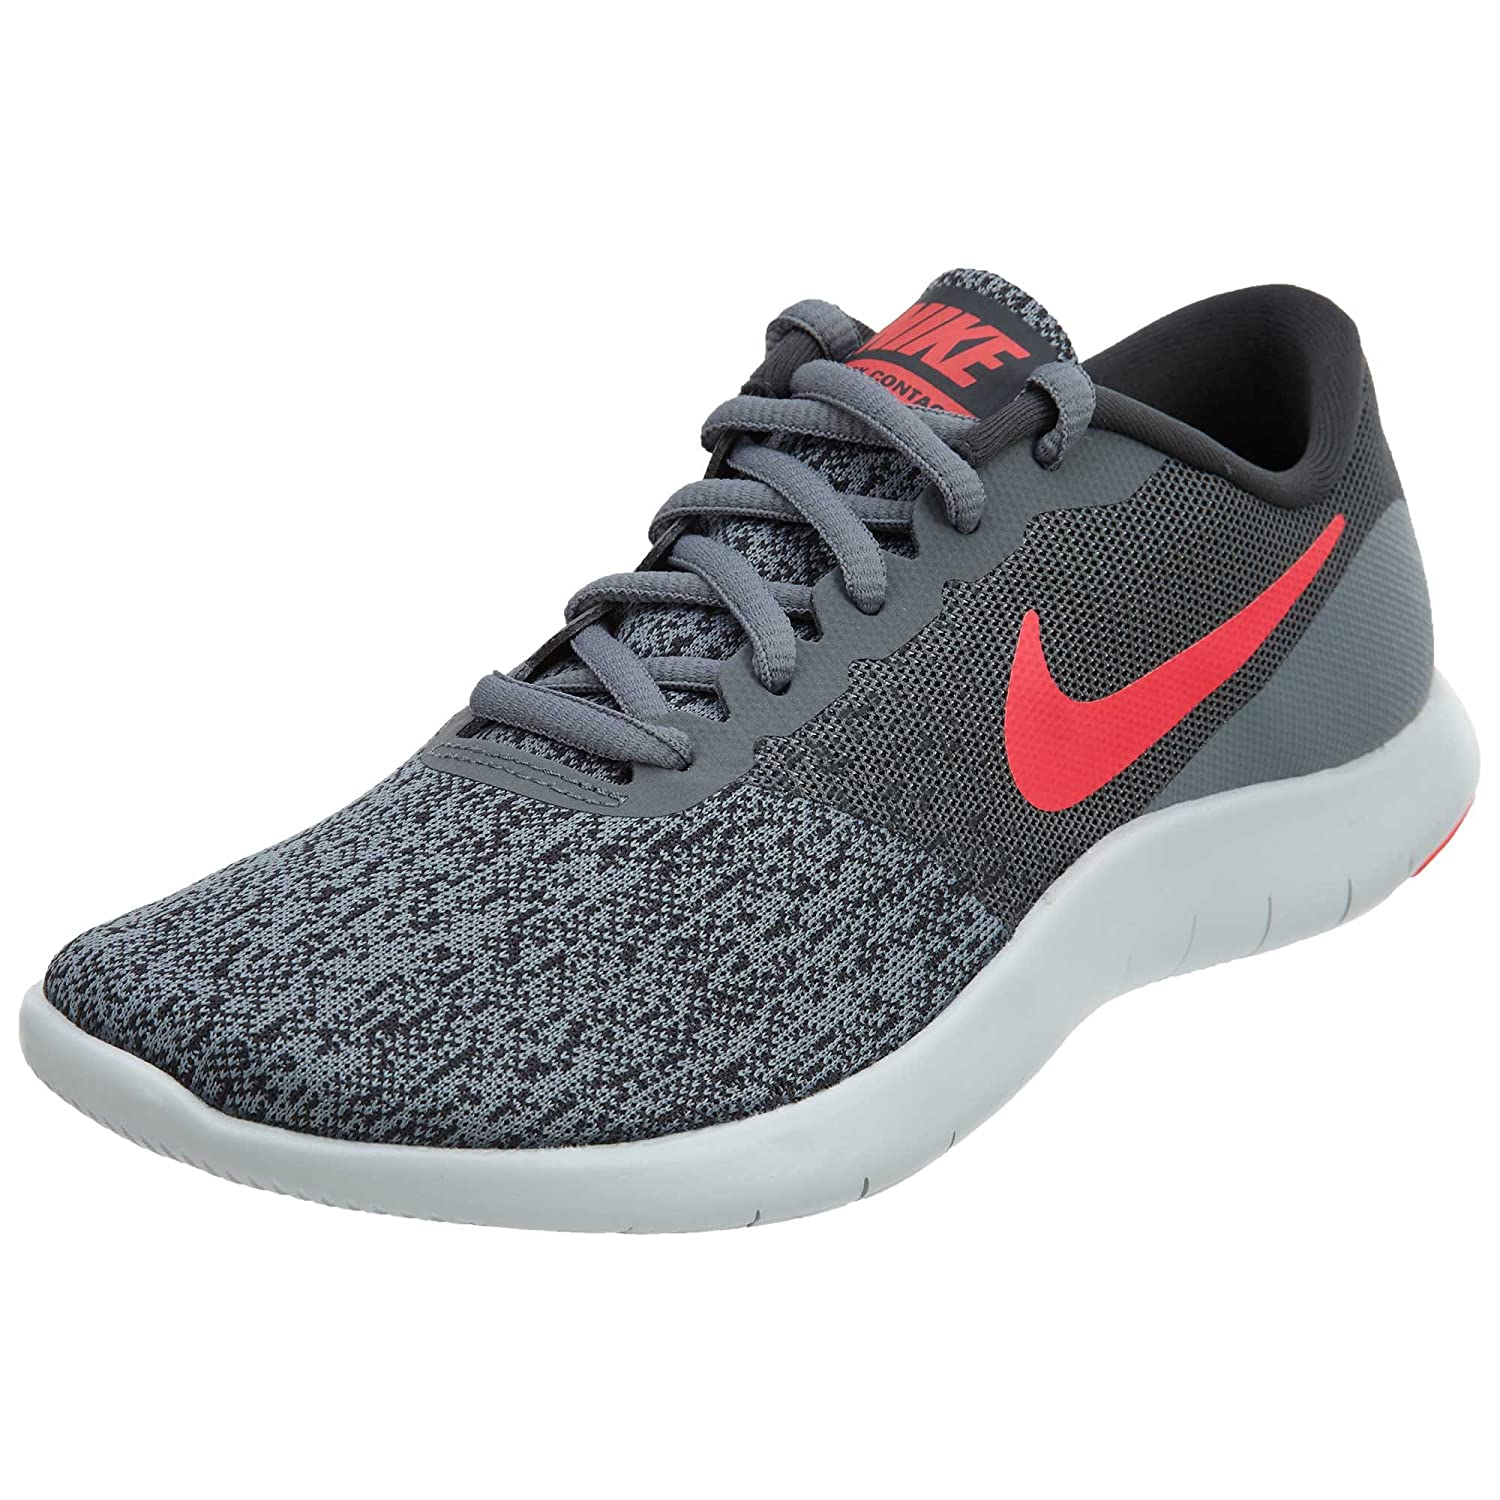 NIKE Women's Flex Contact Running Shoe B072STTWM5 6 B(M) US|Cool Grey Solar Red Anthracite